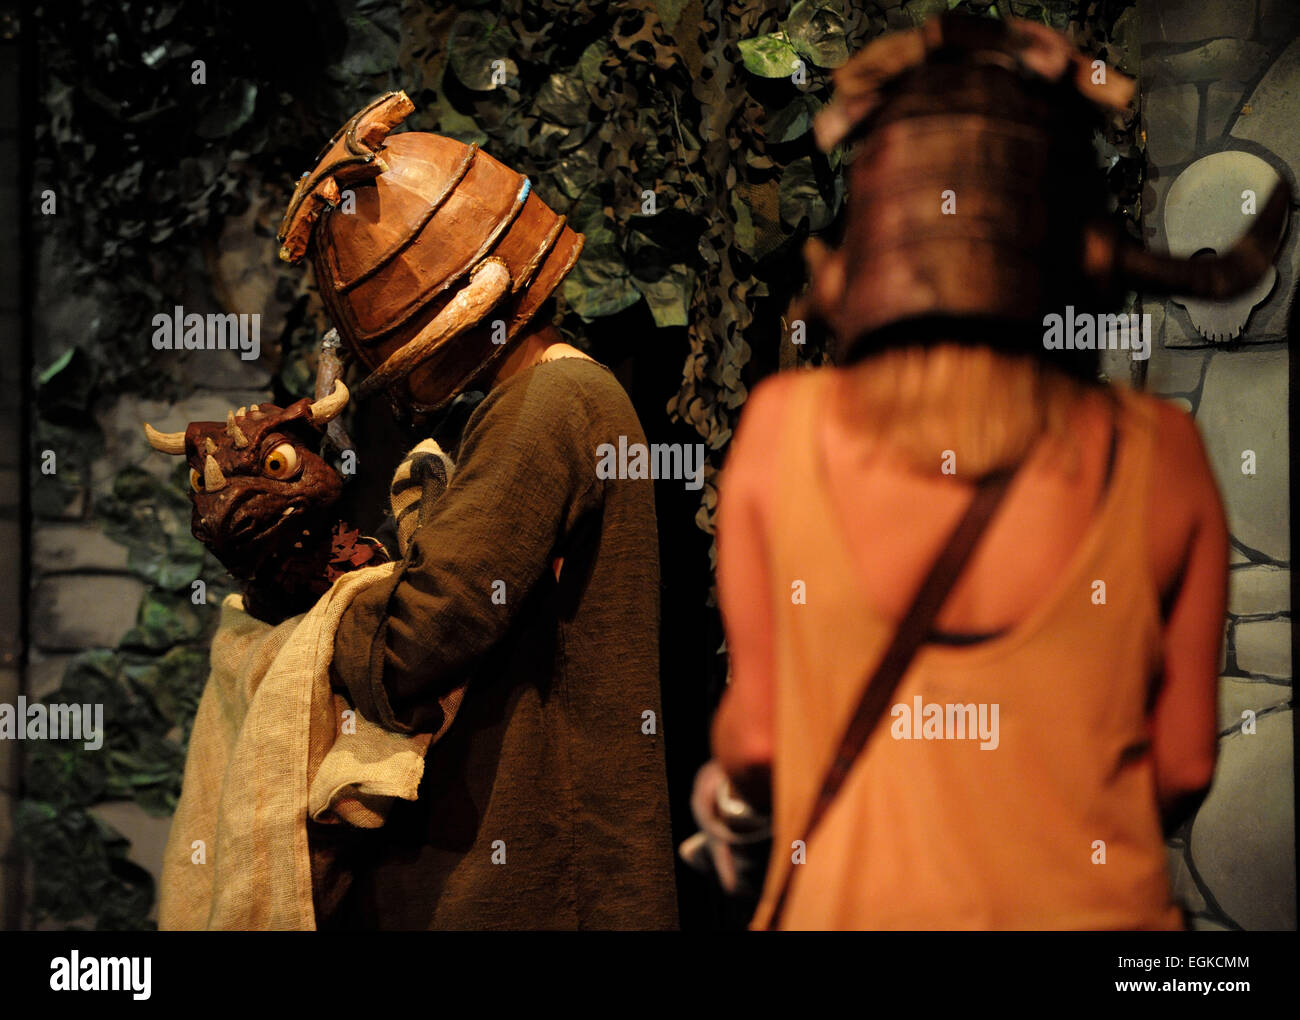 Knightmare Stock Photos & Knightmare Stock Images - Alamy